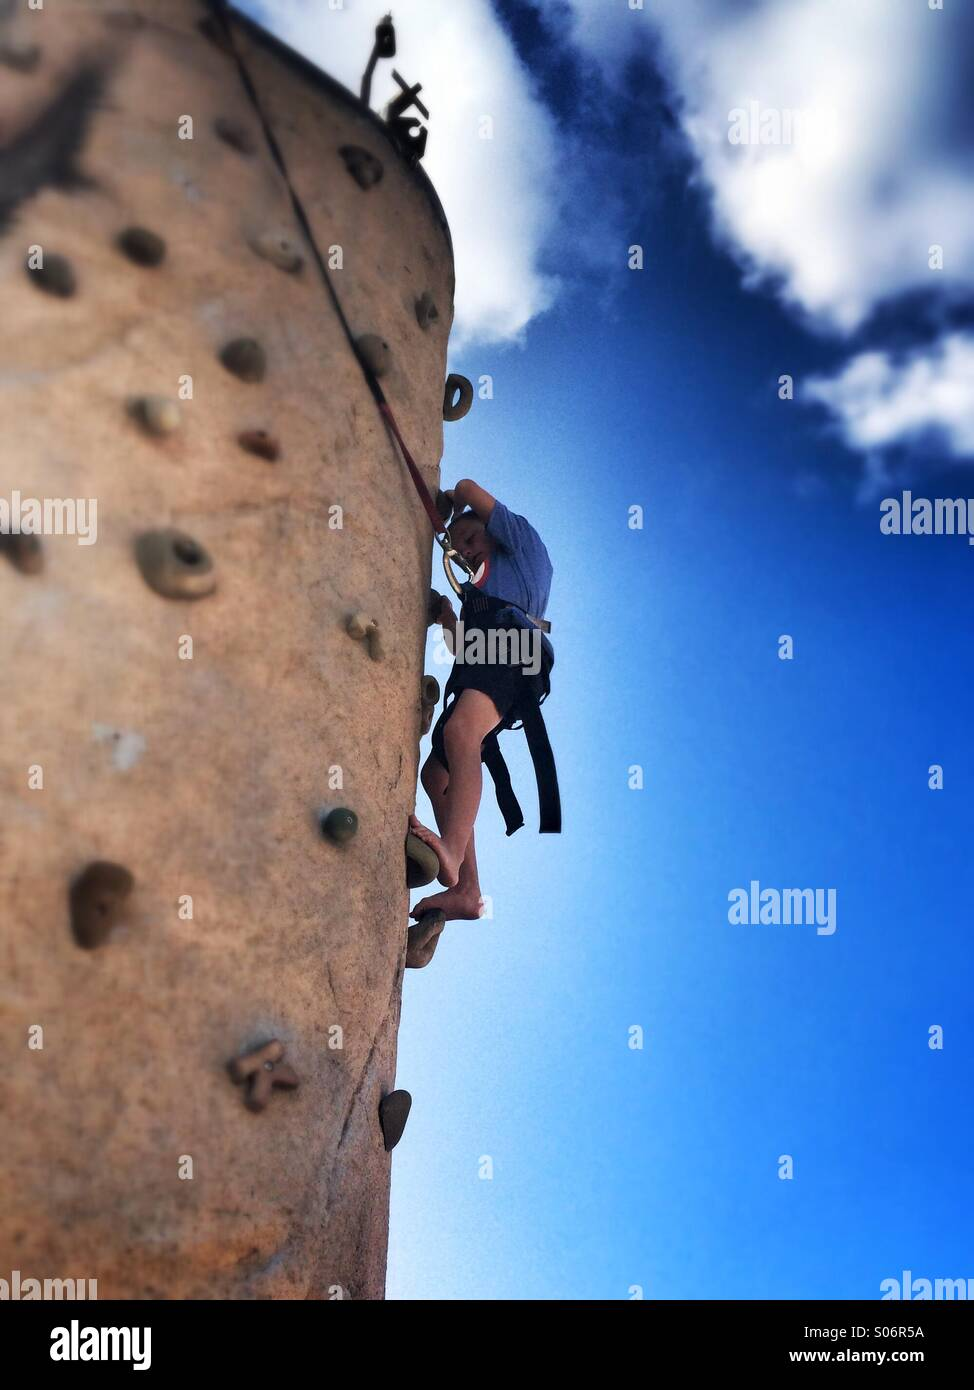 A young boy attempts to climb a rock wall - Stock Image